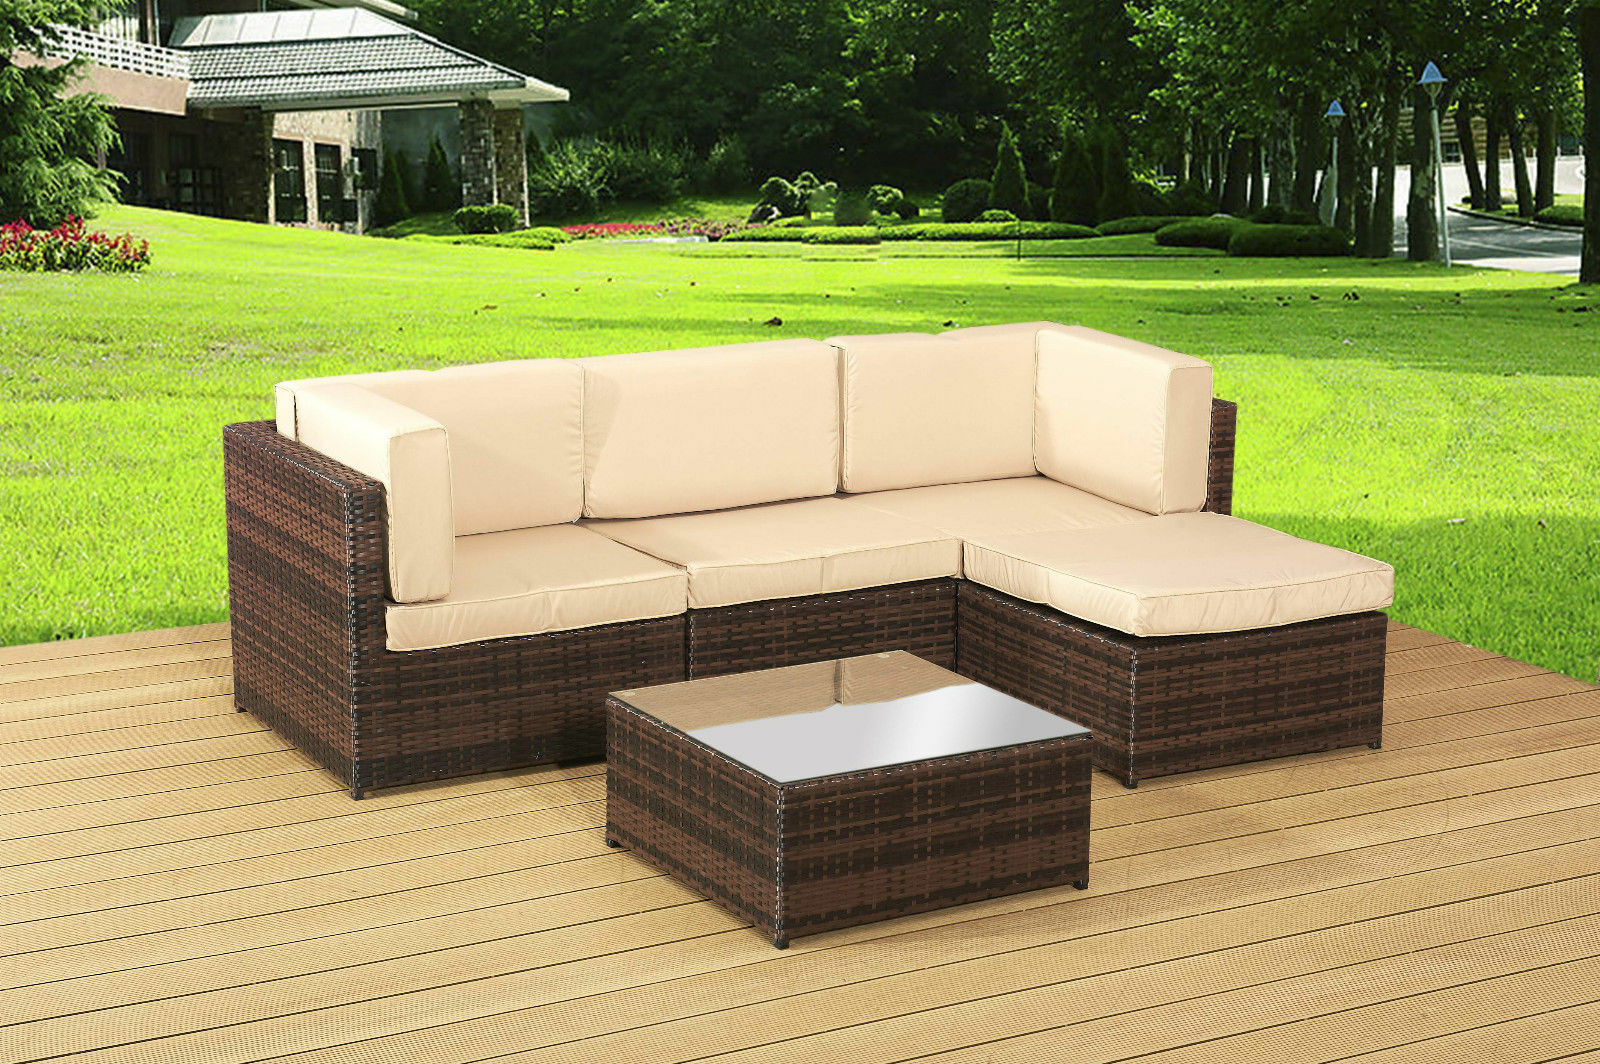 Garden rattan furniture brown lounge set and table for Lounge garden furniture sets